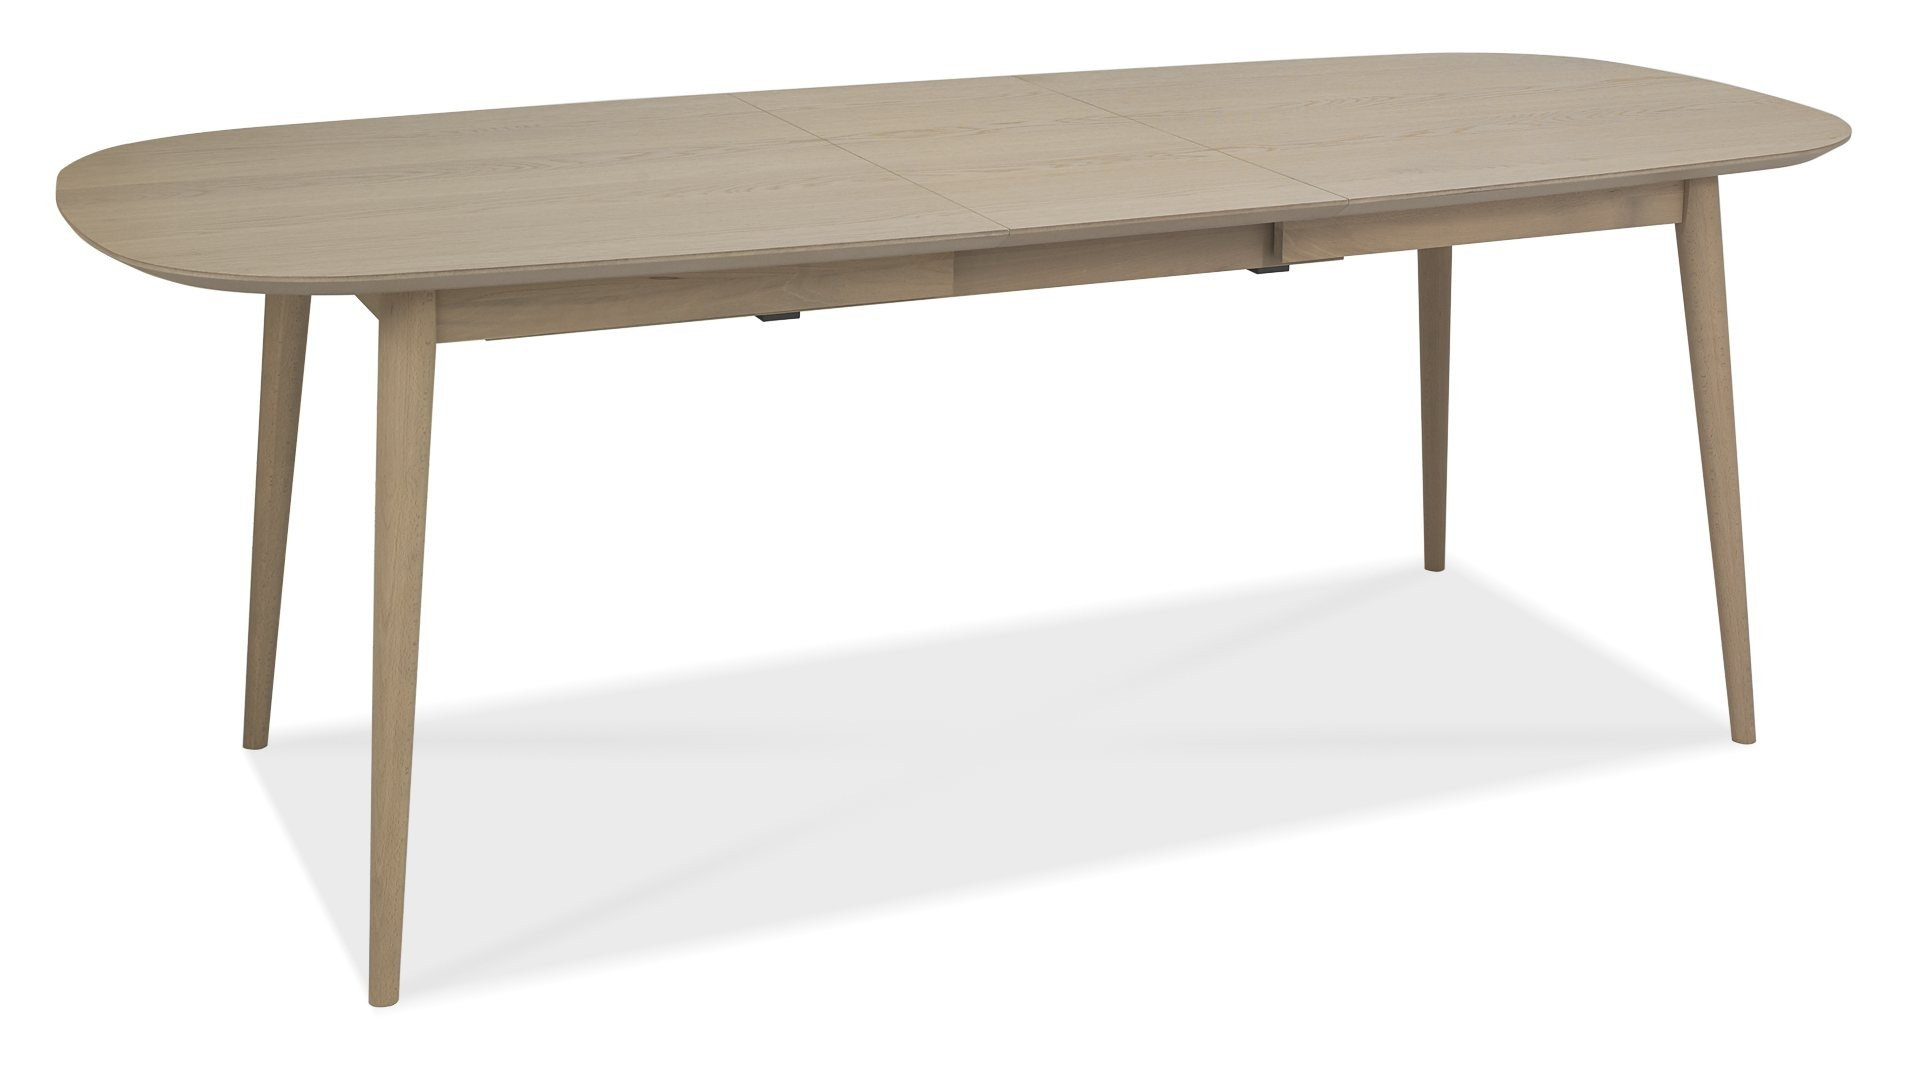 RETRO OAK DINING TABLE 6-8 SEATER OPENED L215cm x D90cm x H77cm